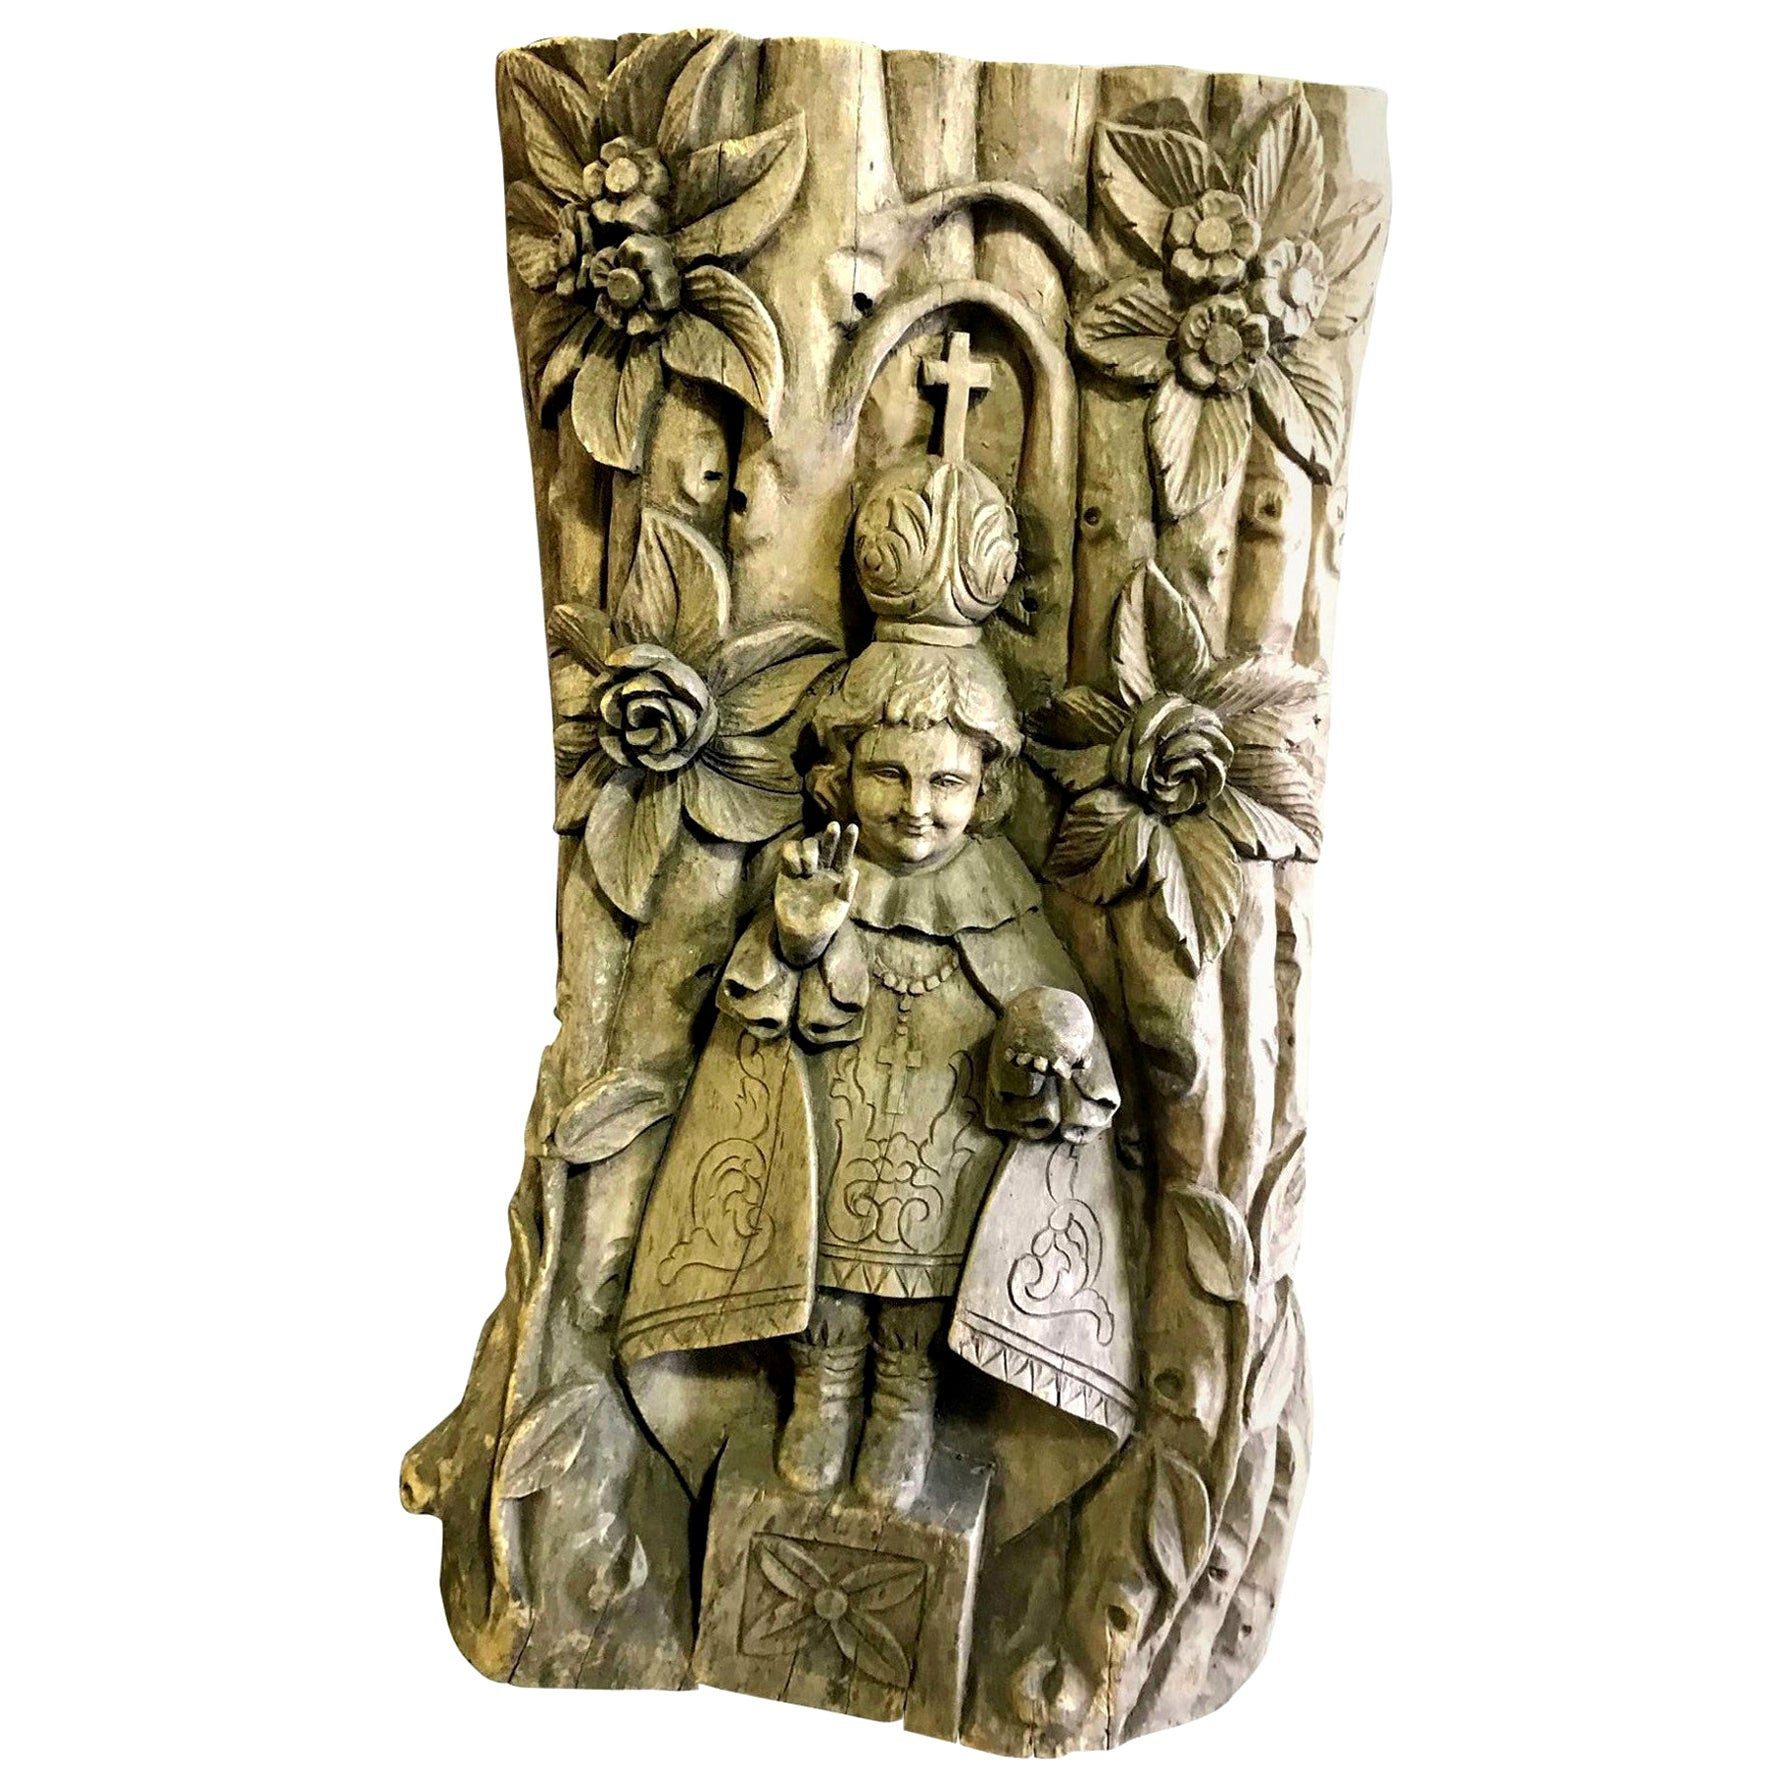 Hand Carved Heavy Wood Wall Relief Plaque Panel of Catholic Saint, 19th Century